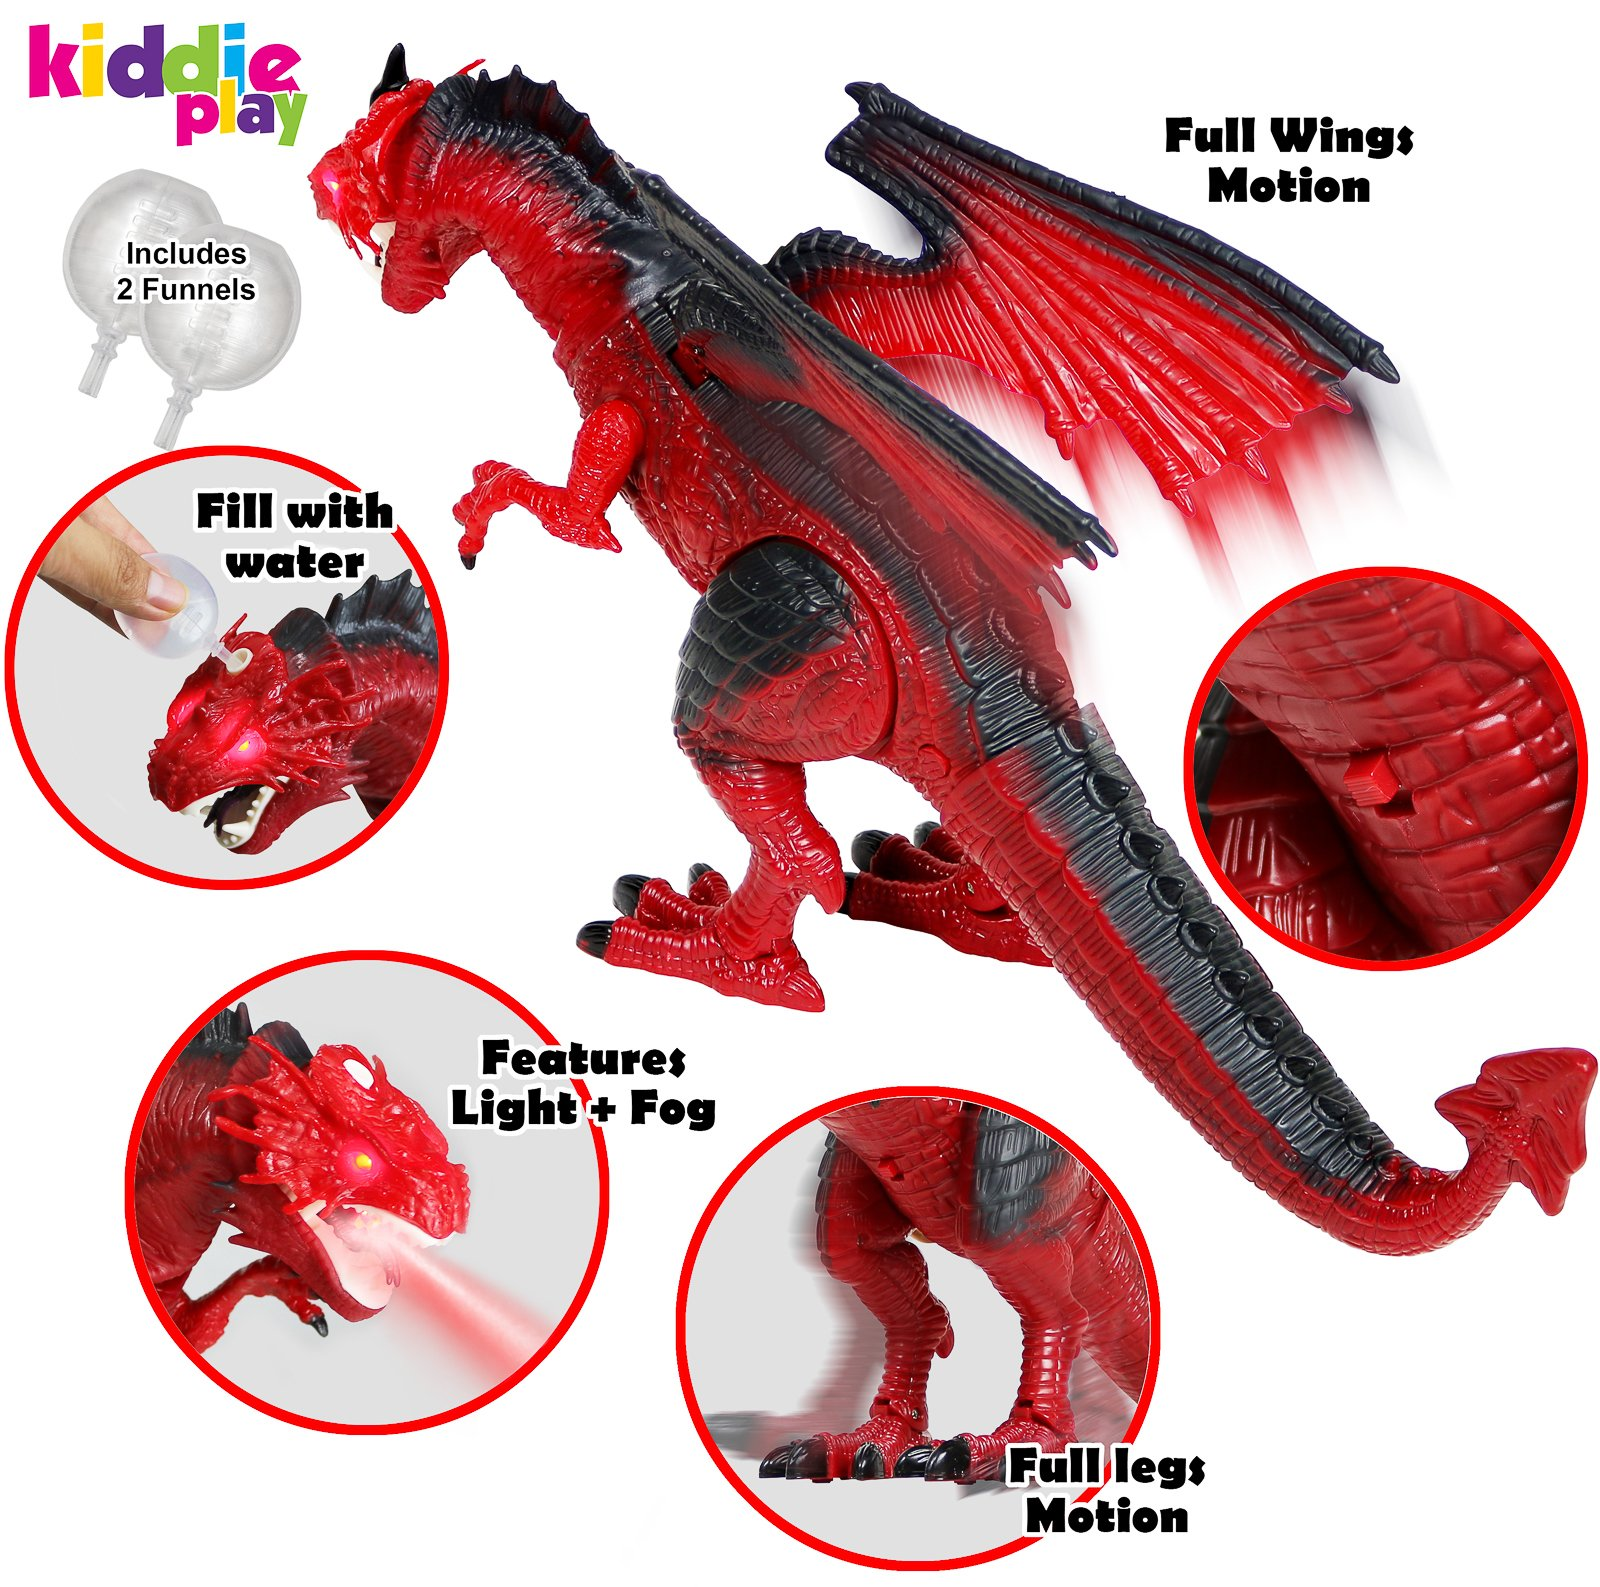 Kiddie Play Remote Control Dinosaur Toy Smoke Breathing and Walking Dragon with Lights and Sounds        by Kiddie Play (Image #2)